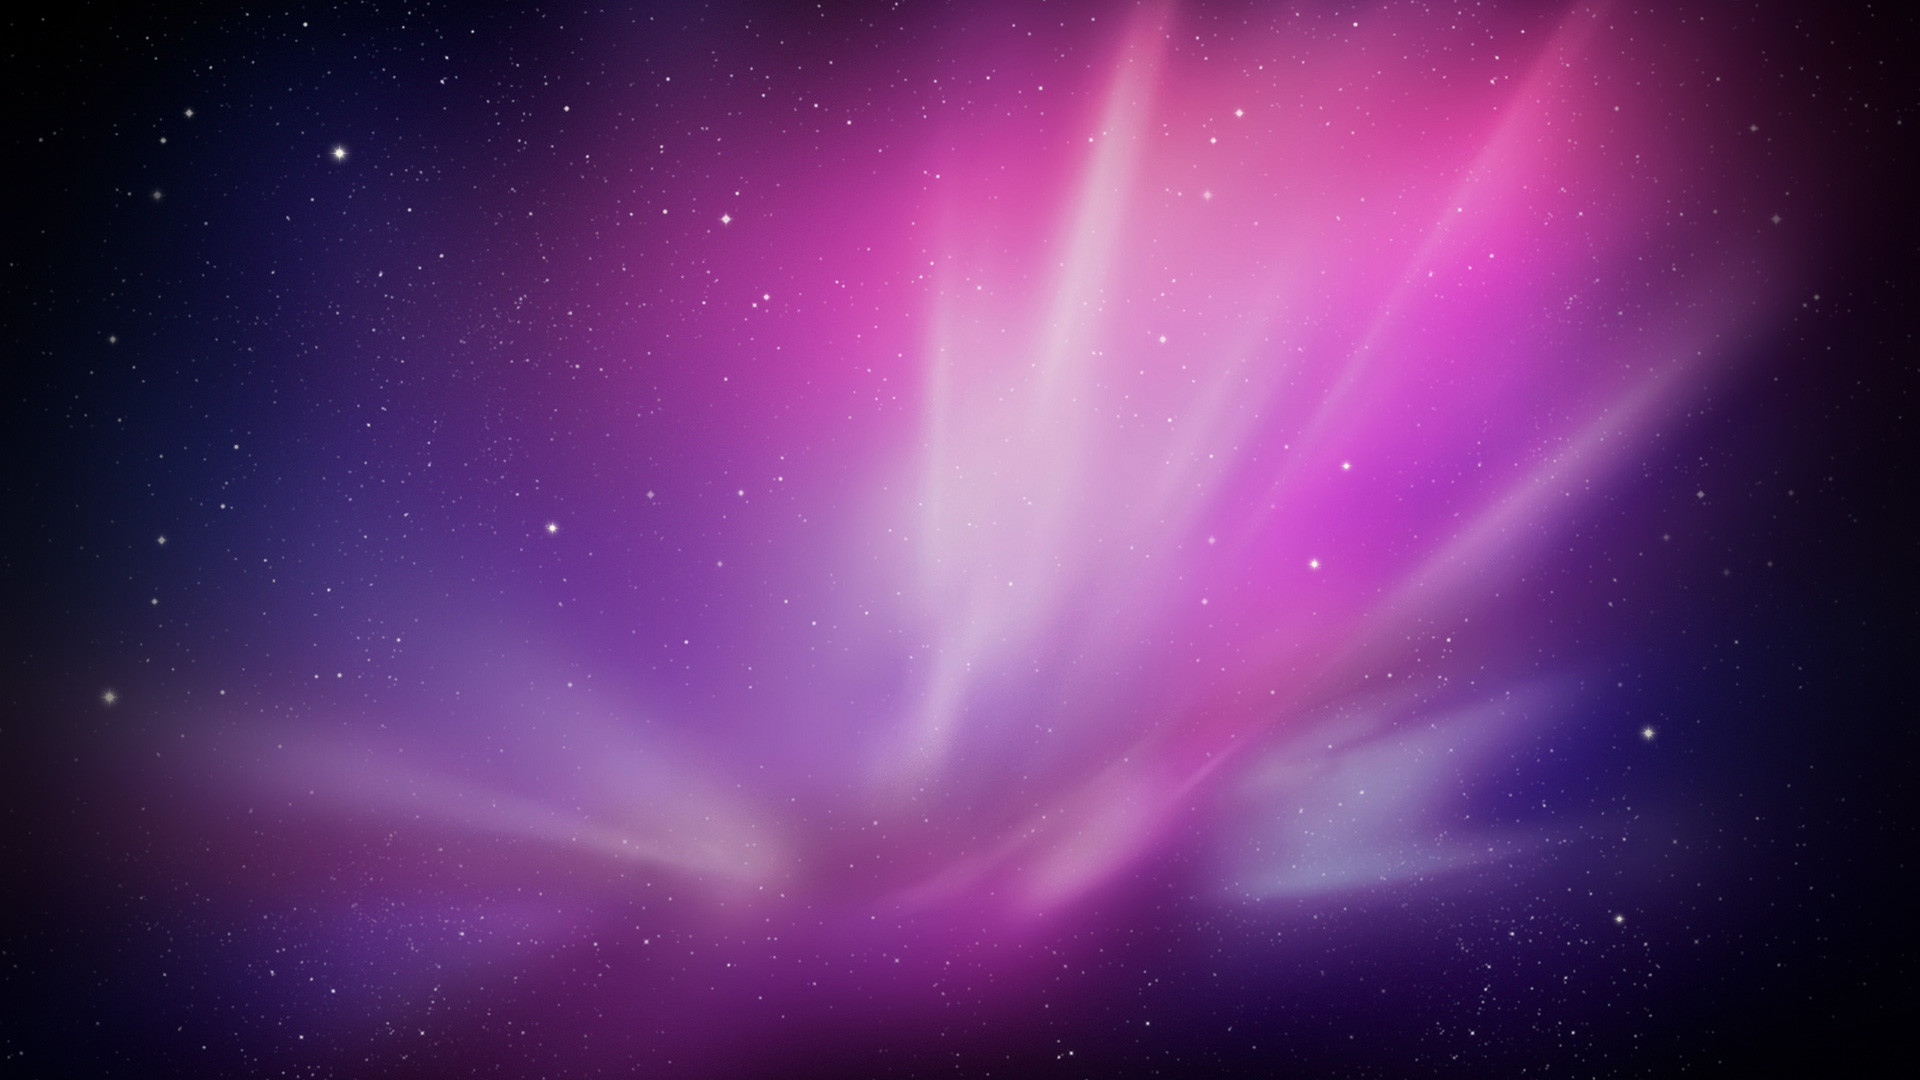 Mac Hd Wallpaper 1080p Wallpapertag